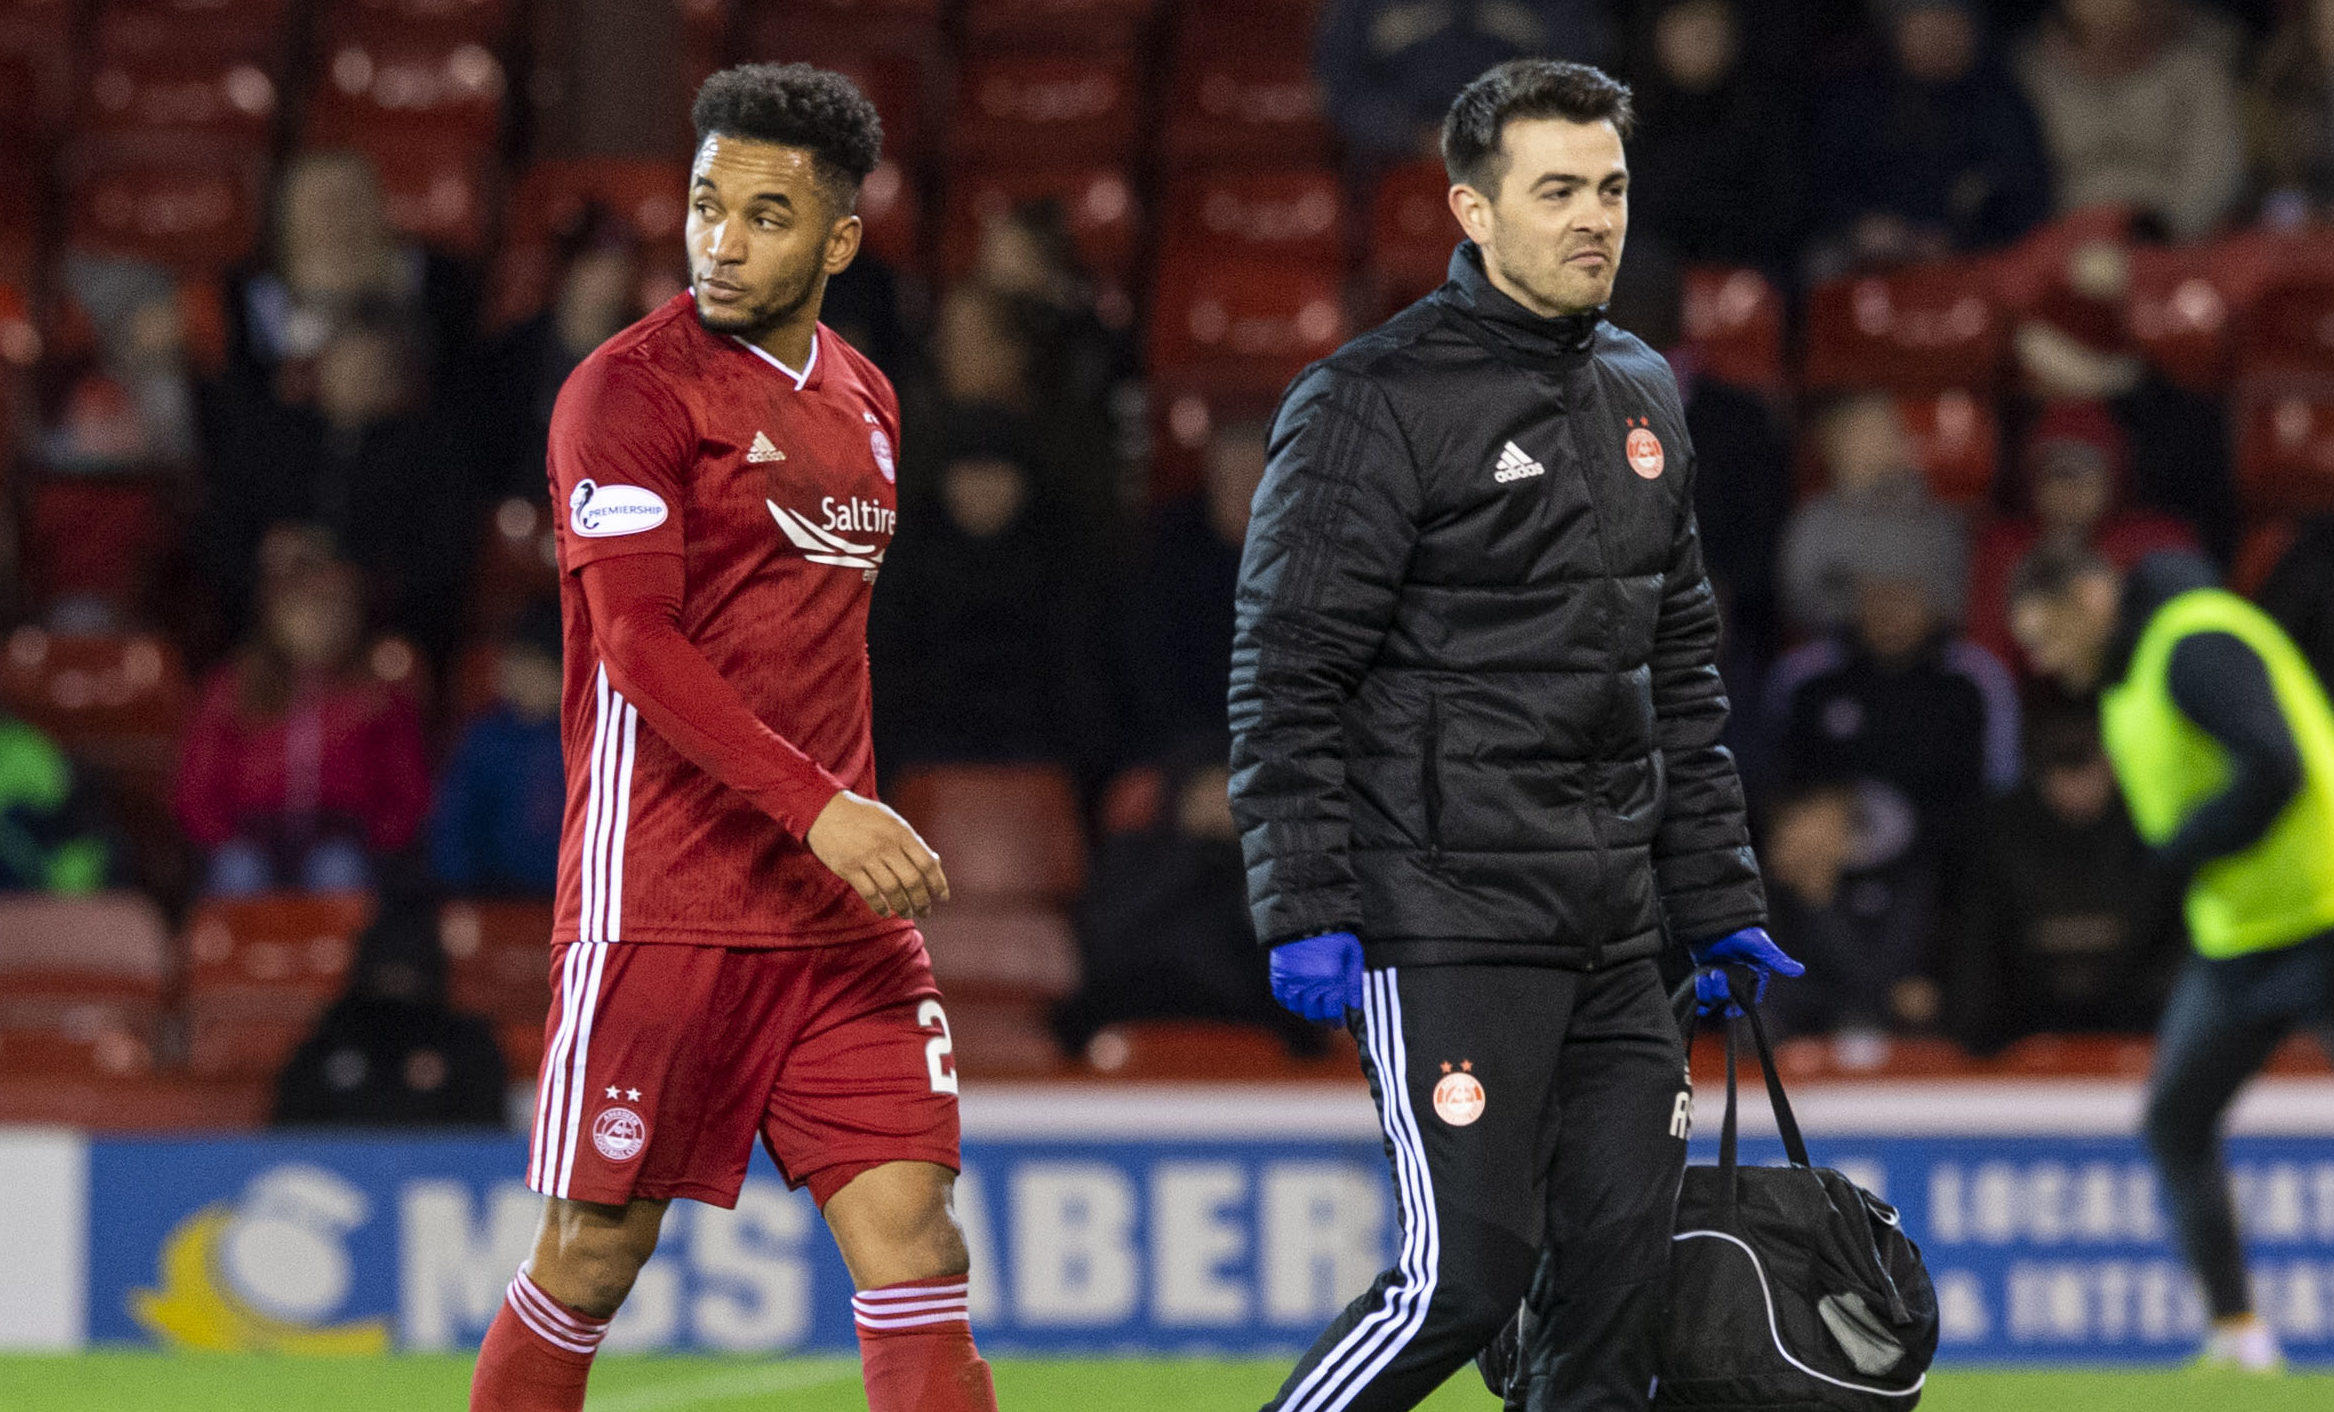 Midfielder Funso Ojo should be back from injury for Saturday.